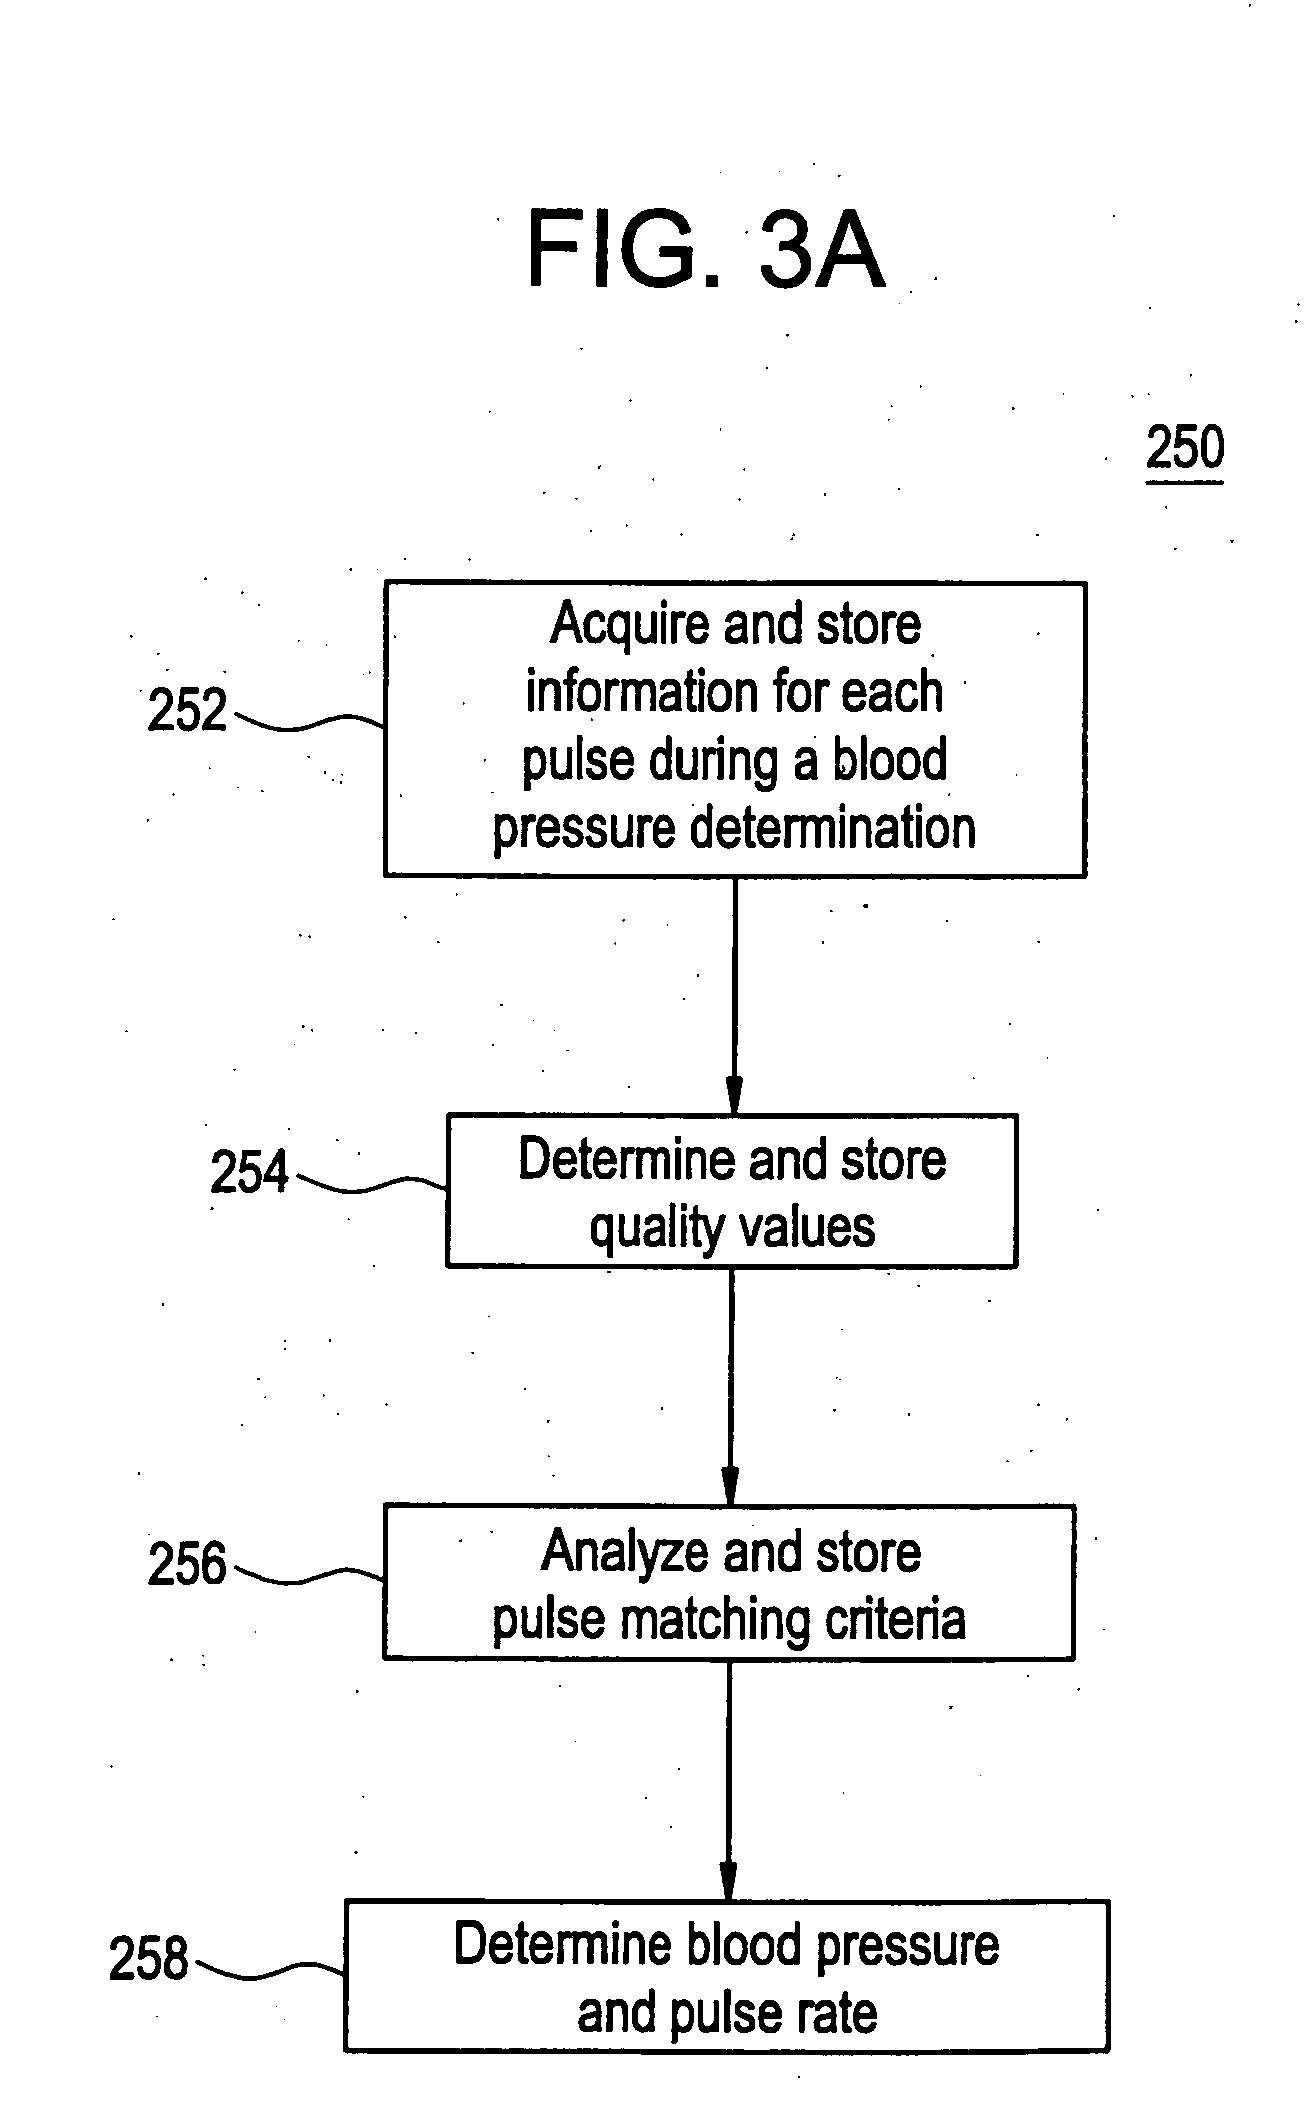 hight resolution of us20060184055a1 method and system for determination of pulse rate google patents